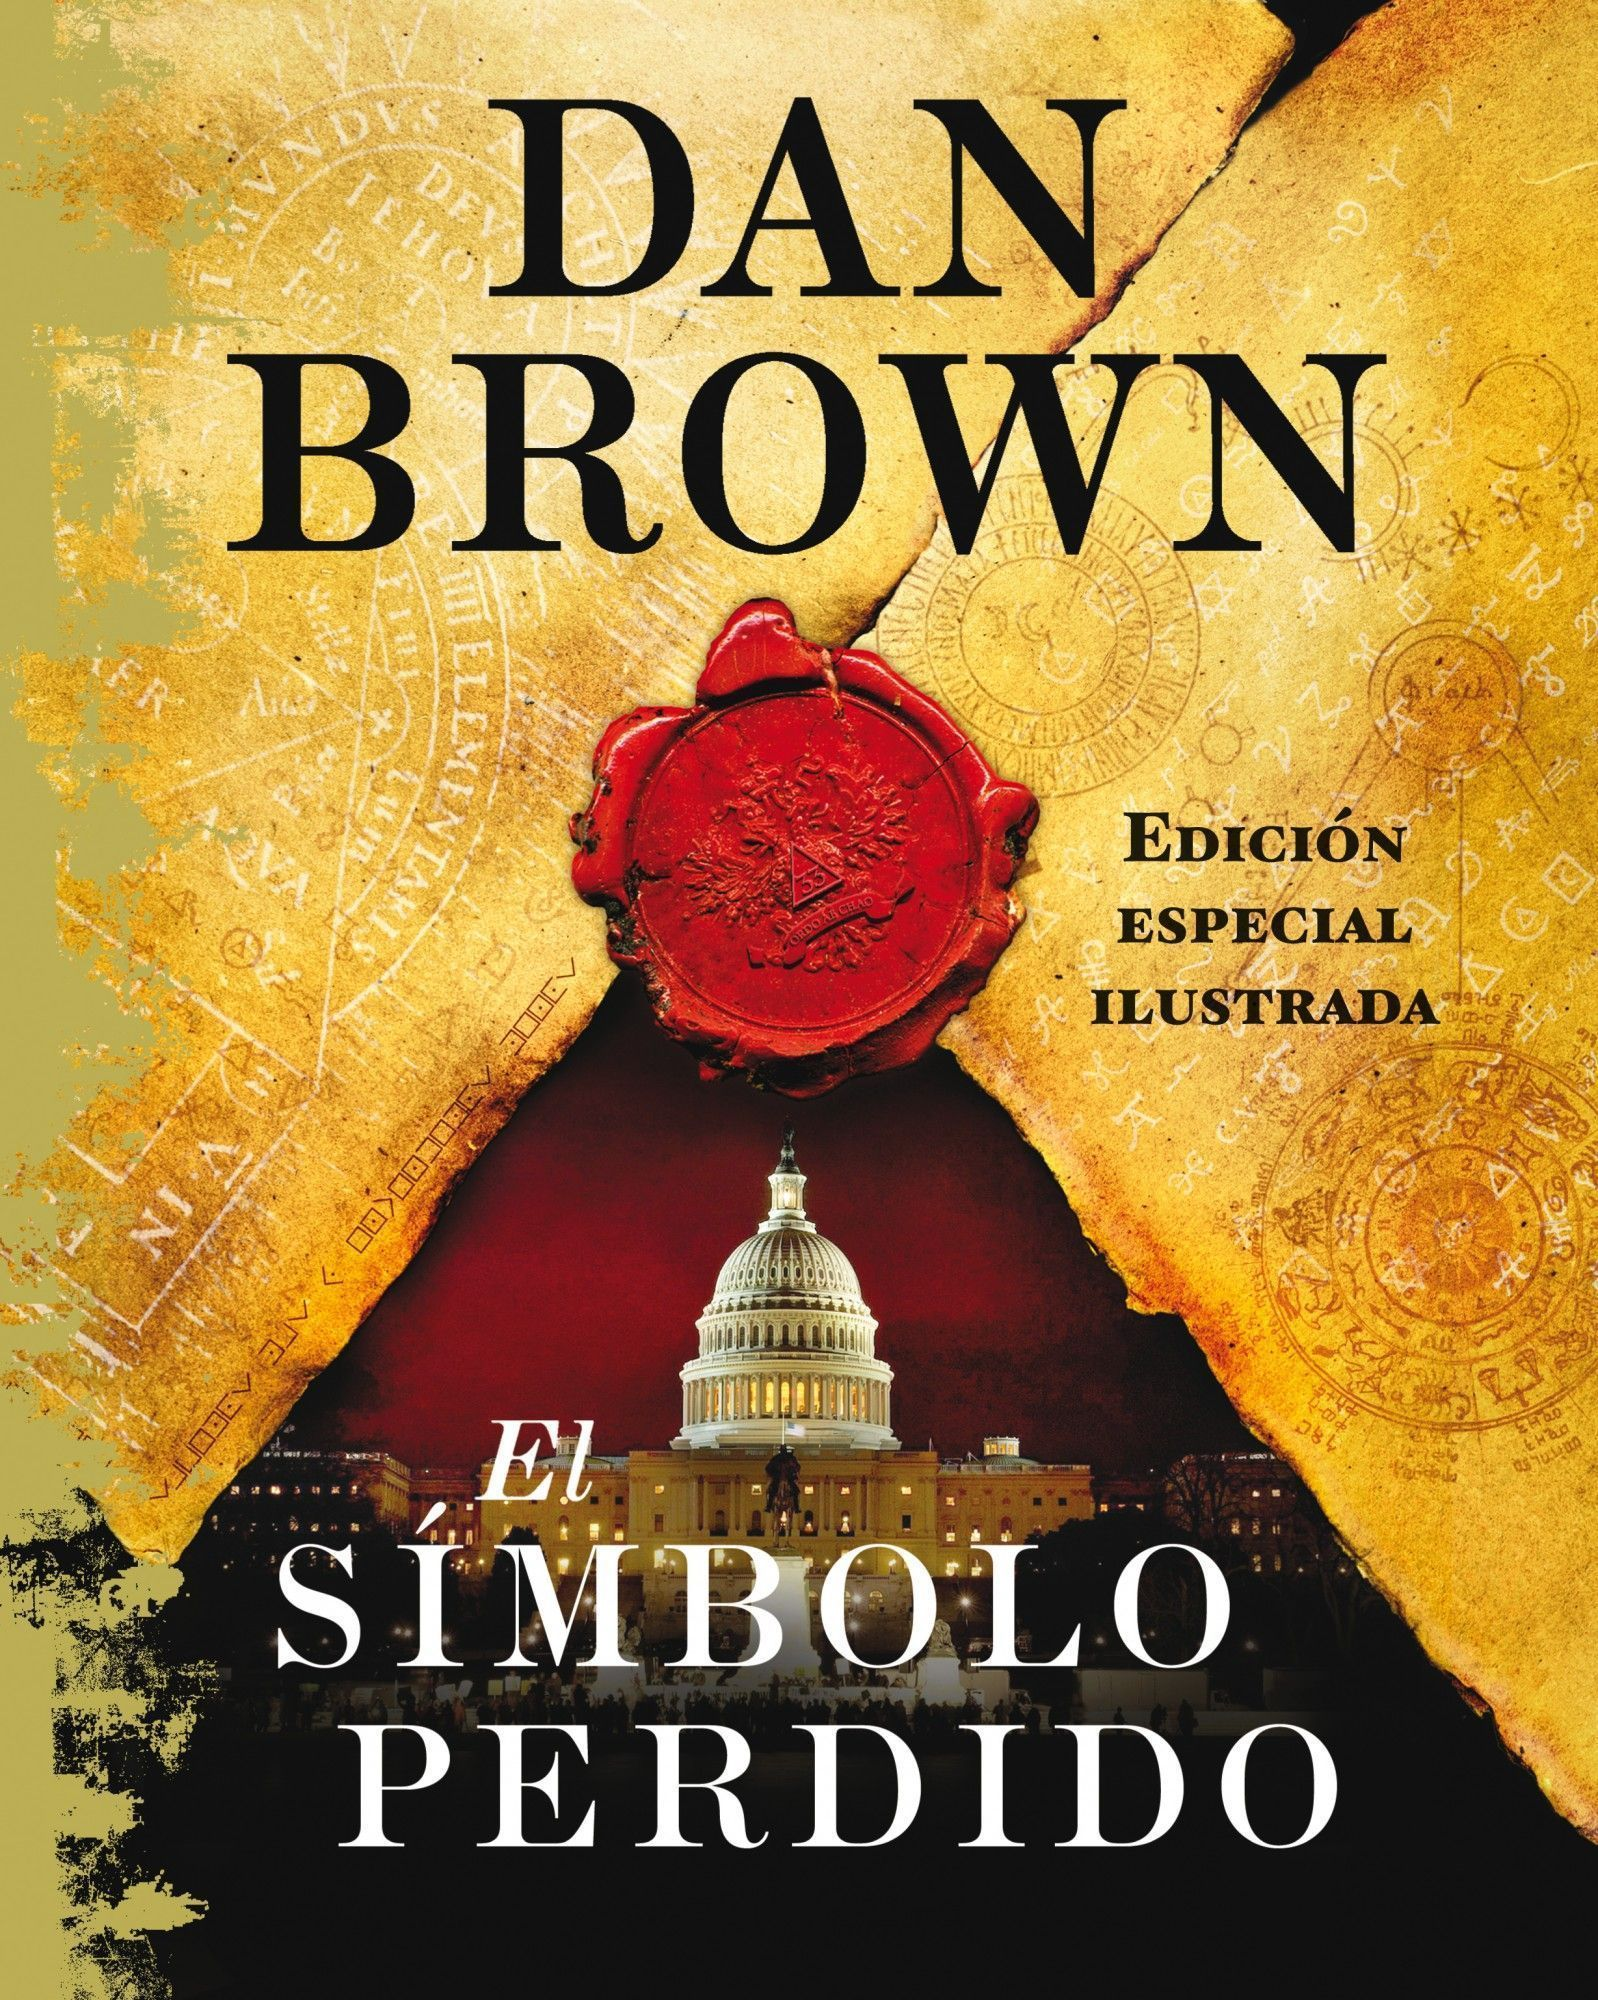 Dan Brown Libros Orden Origen De Dan Brown Dan Brown Planeta De Libros